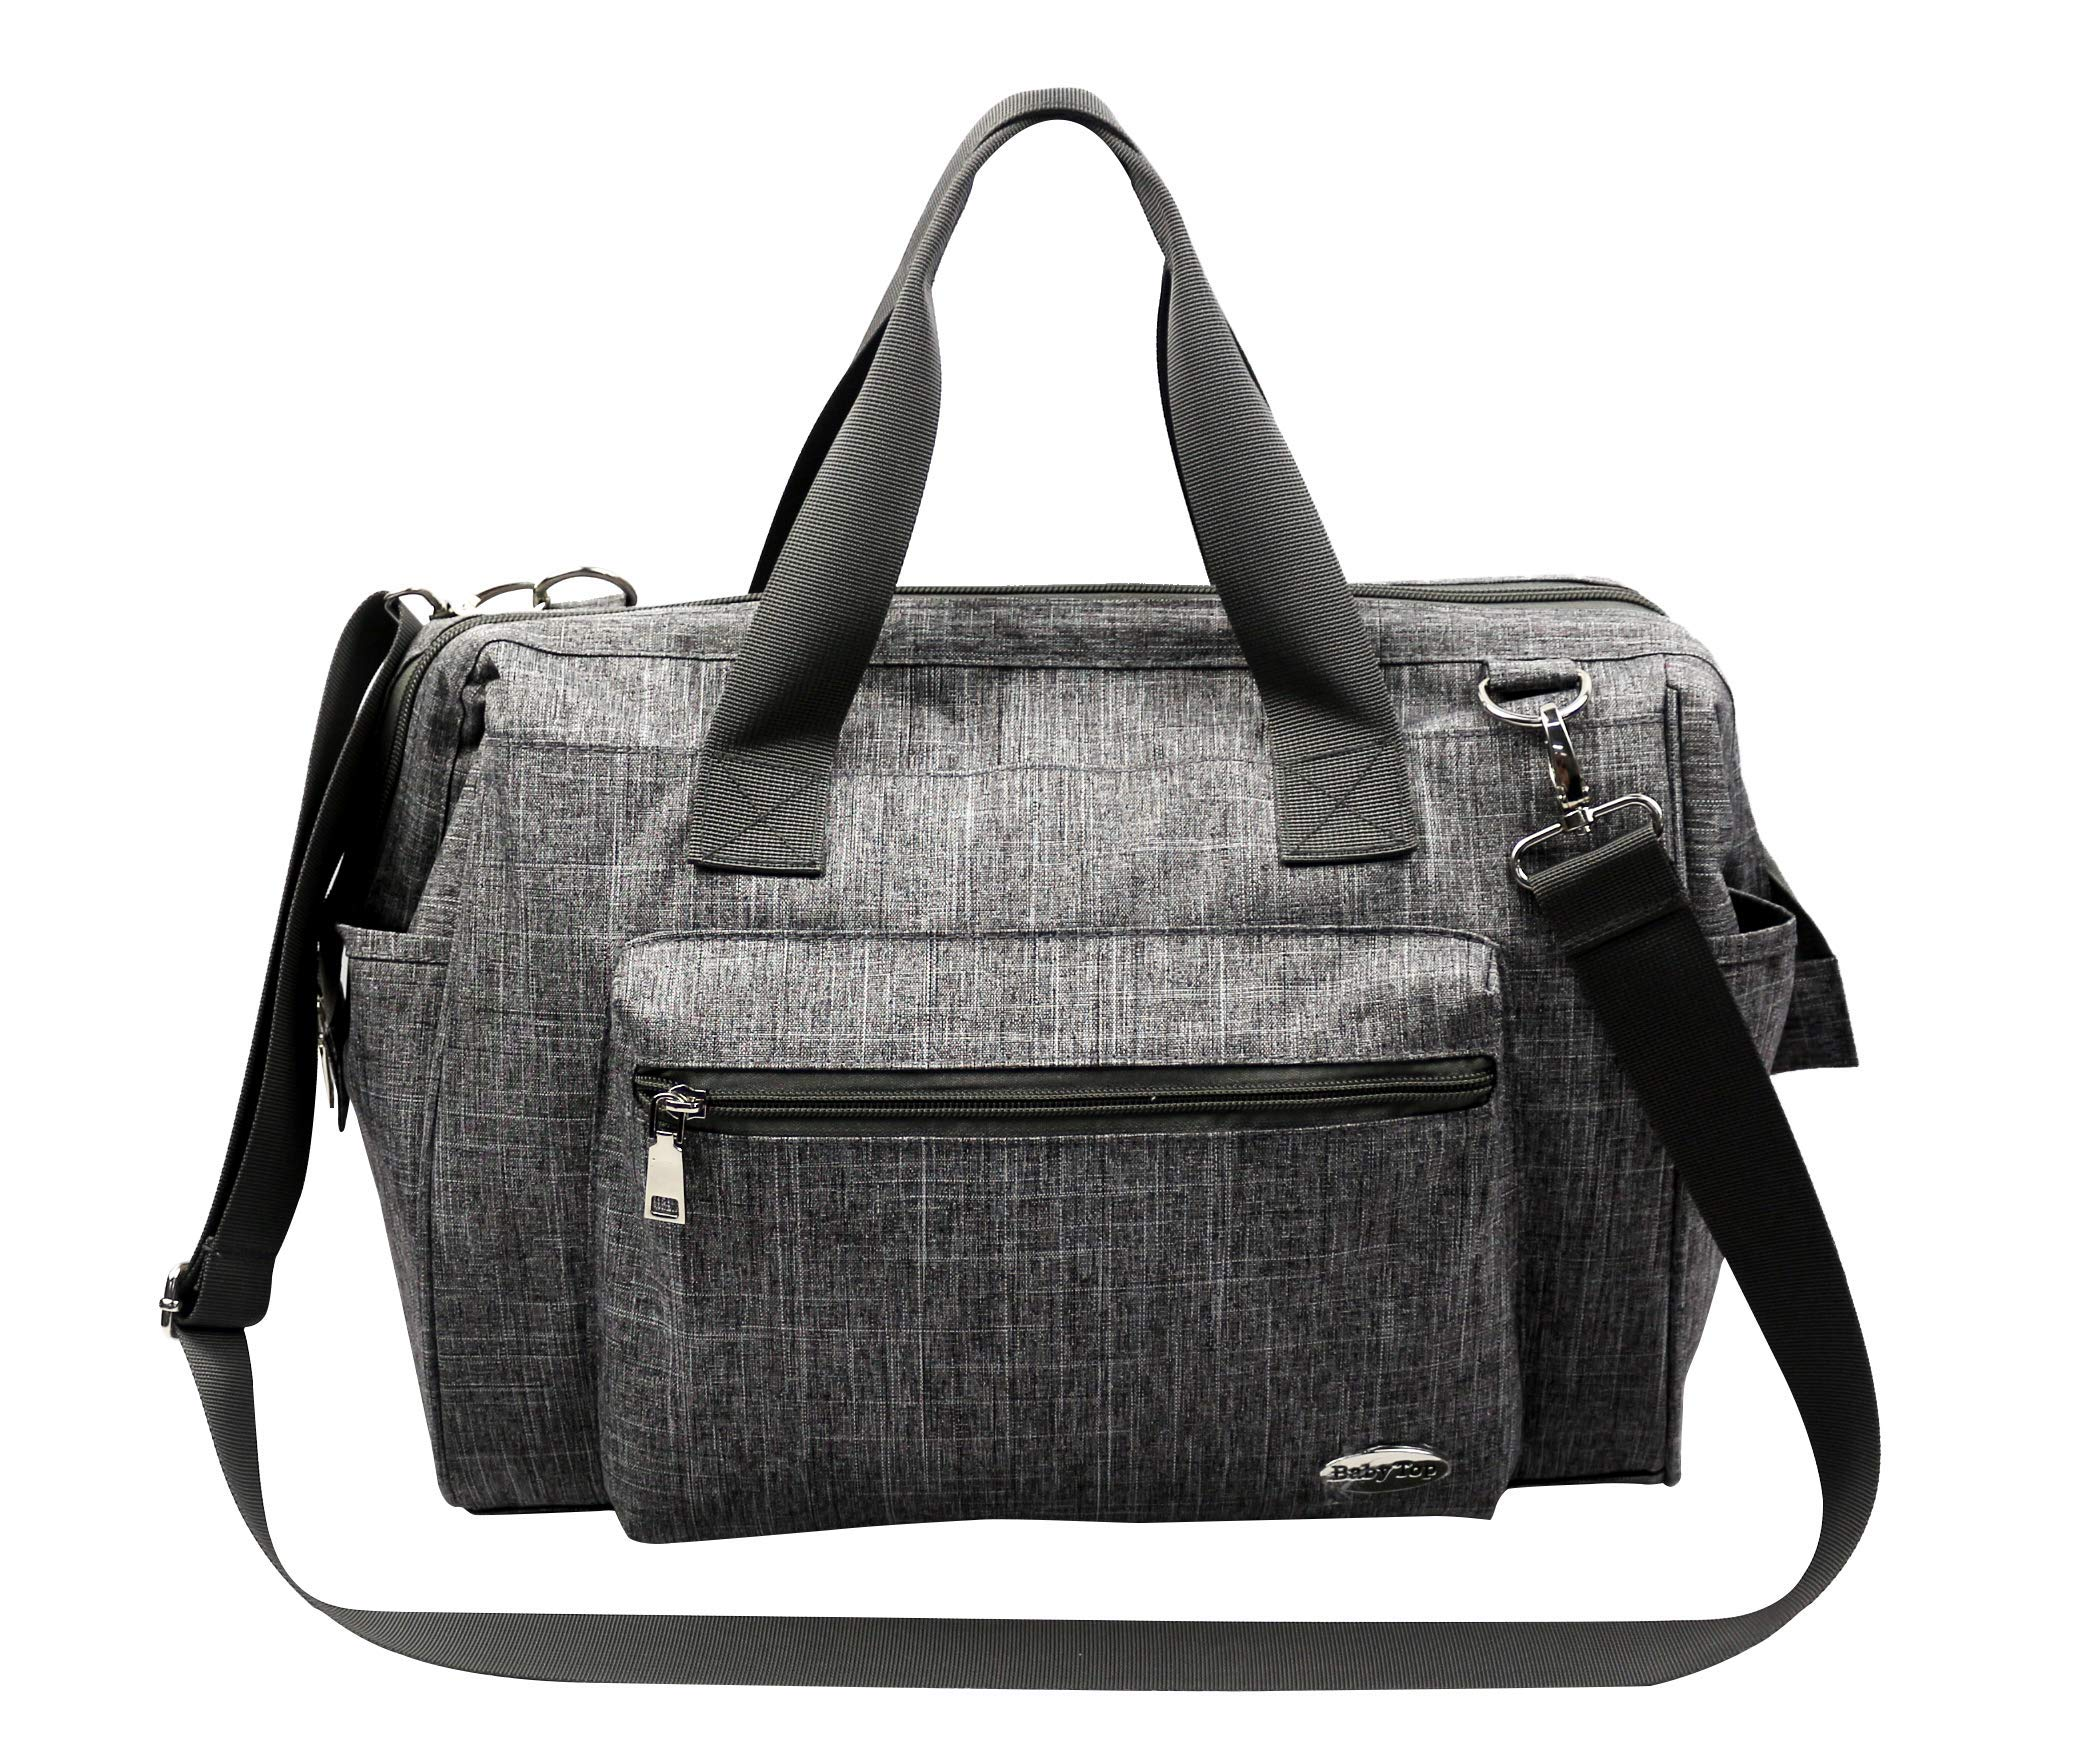 Mummy Bag Diaper Bag Large Capacity Diaper Handbag Fashion mom and dad Convertible Travel Baby Bag boy and Girl with Replacement pad Multi-Function Insulated Pocket(Grey) by Baby top